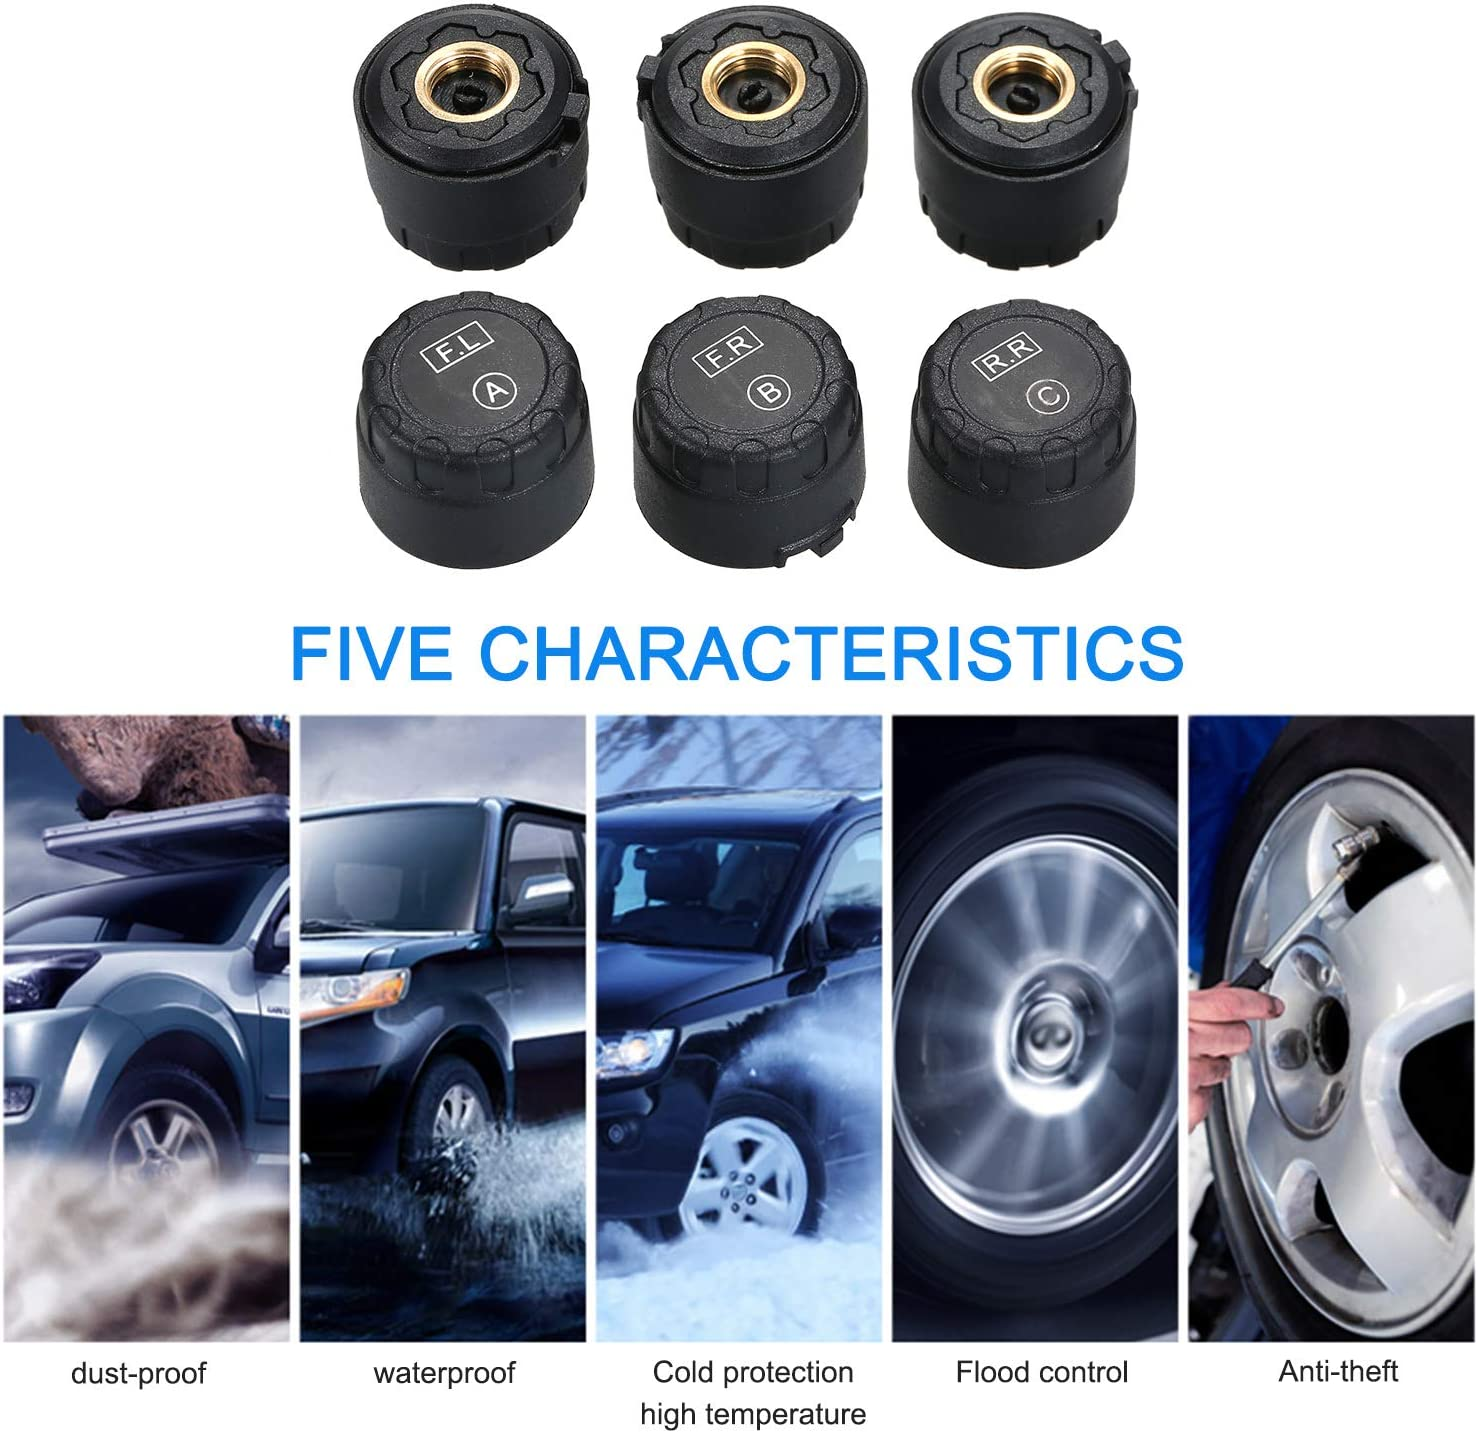 Carrfan Wireless Solar Power TPMS Tire Pressure Monitoring System RV Truck TPMS with 6 External Sensors for 4-6 Tires Car RV Truck Tow Trailers